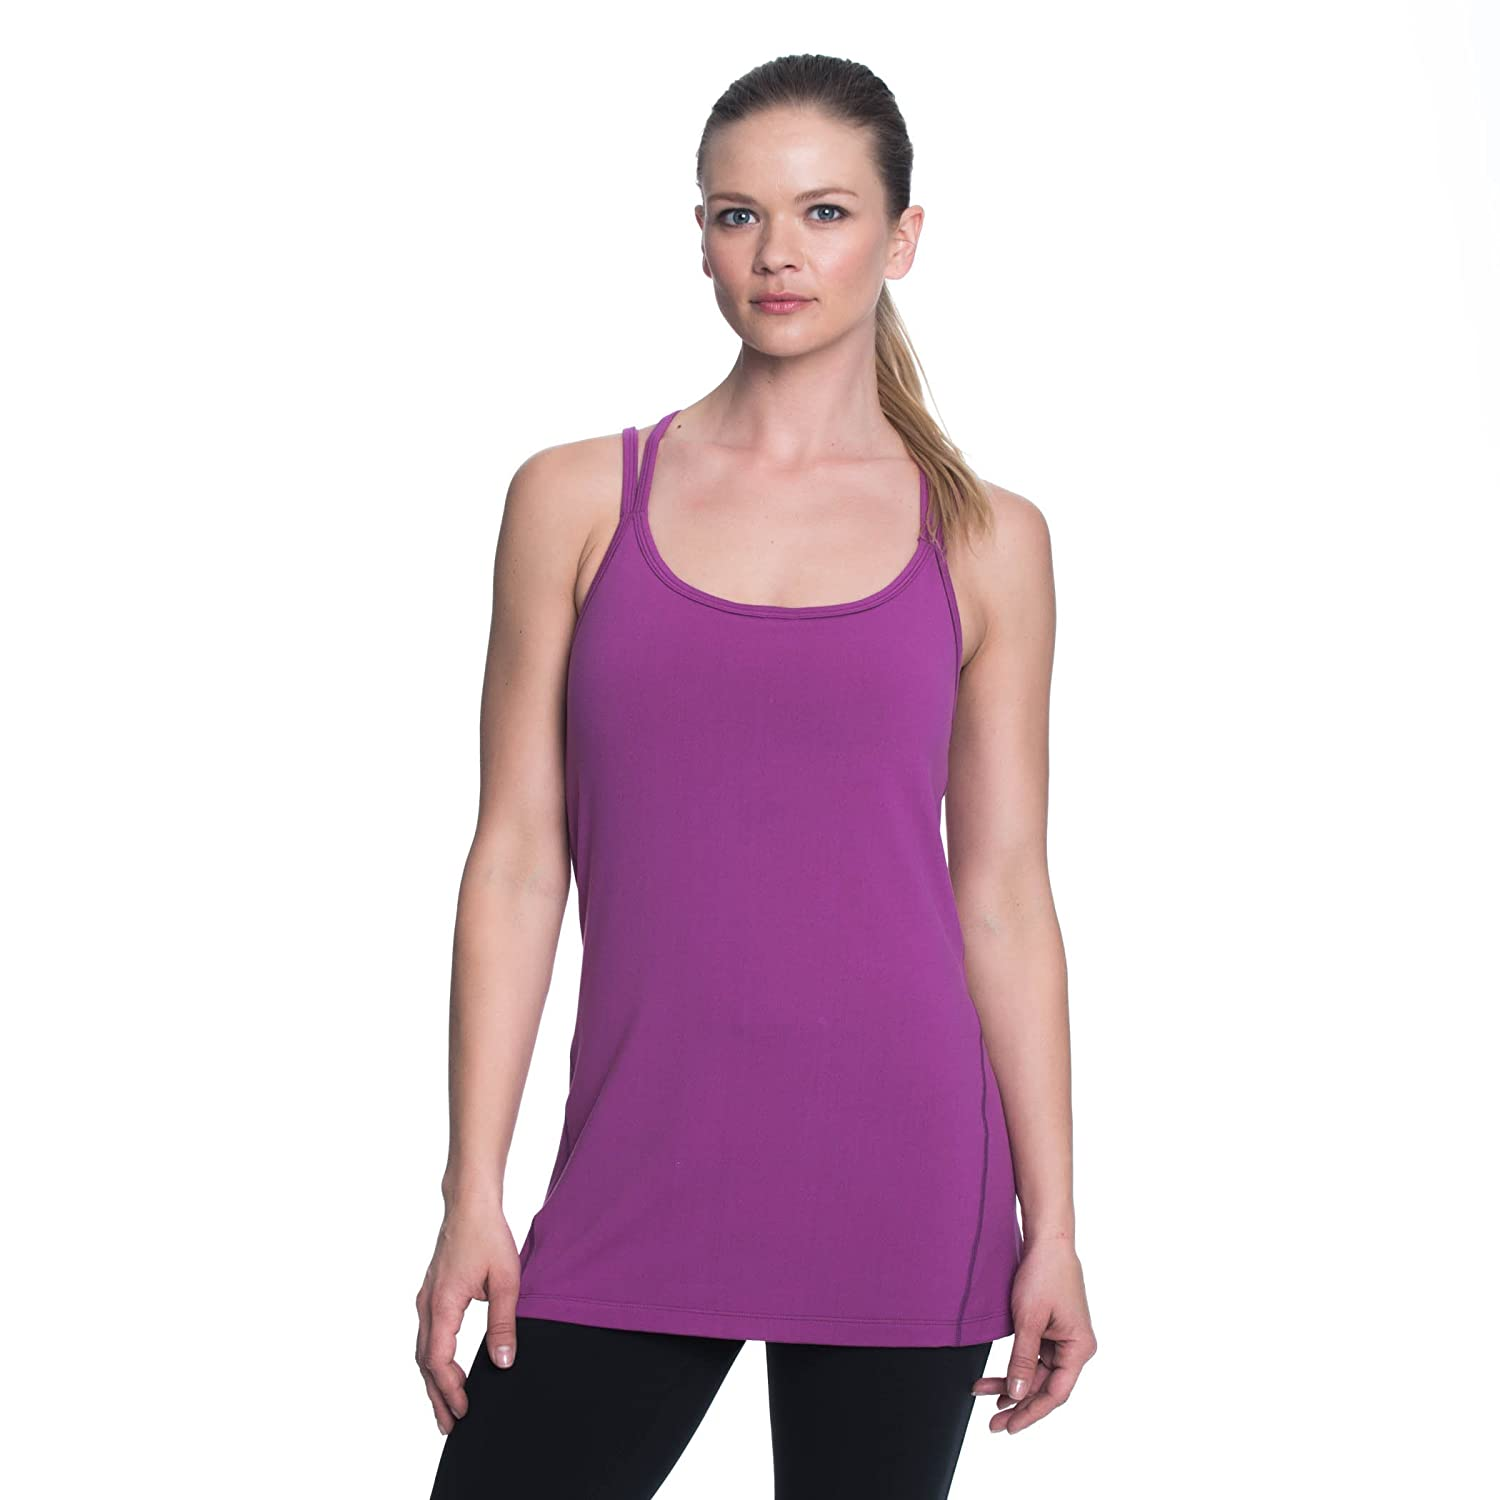 cae42bf7299d1 well-wreapped GAIAM Women s Lana Tank Top With Built In Medium Impact  Wireless Bra